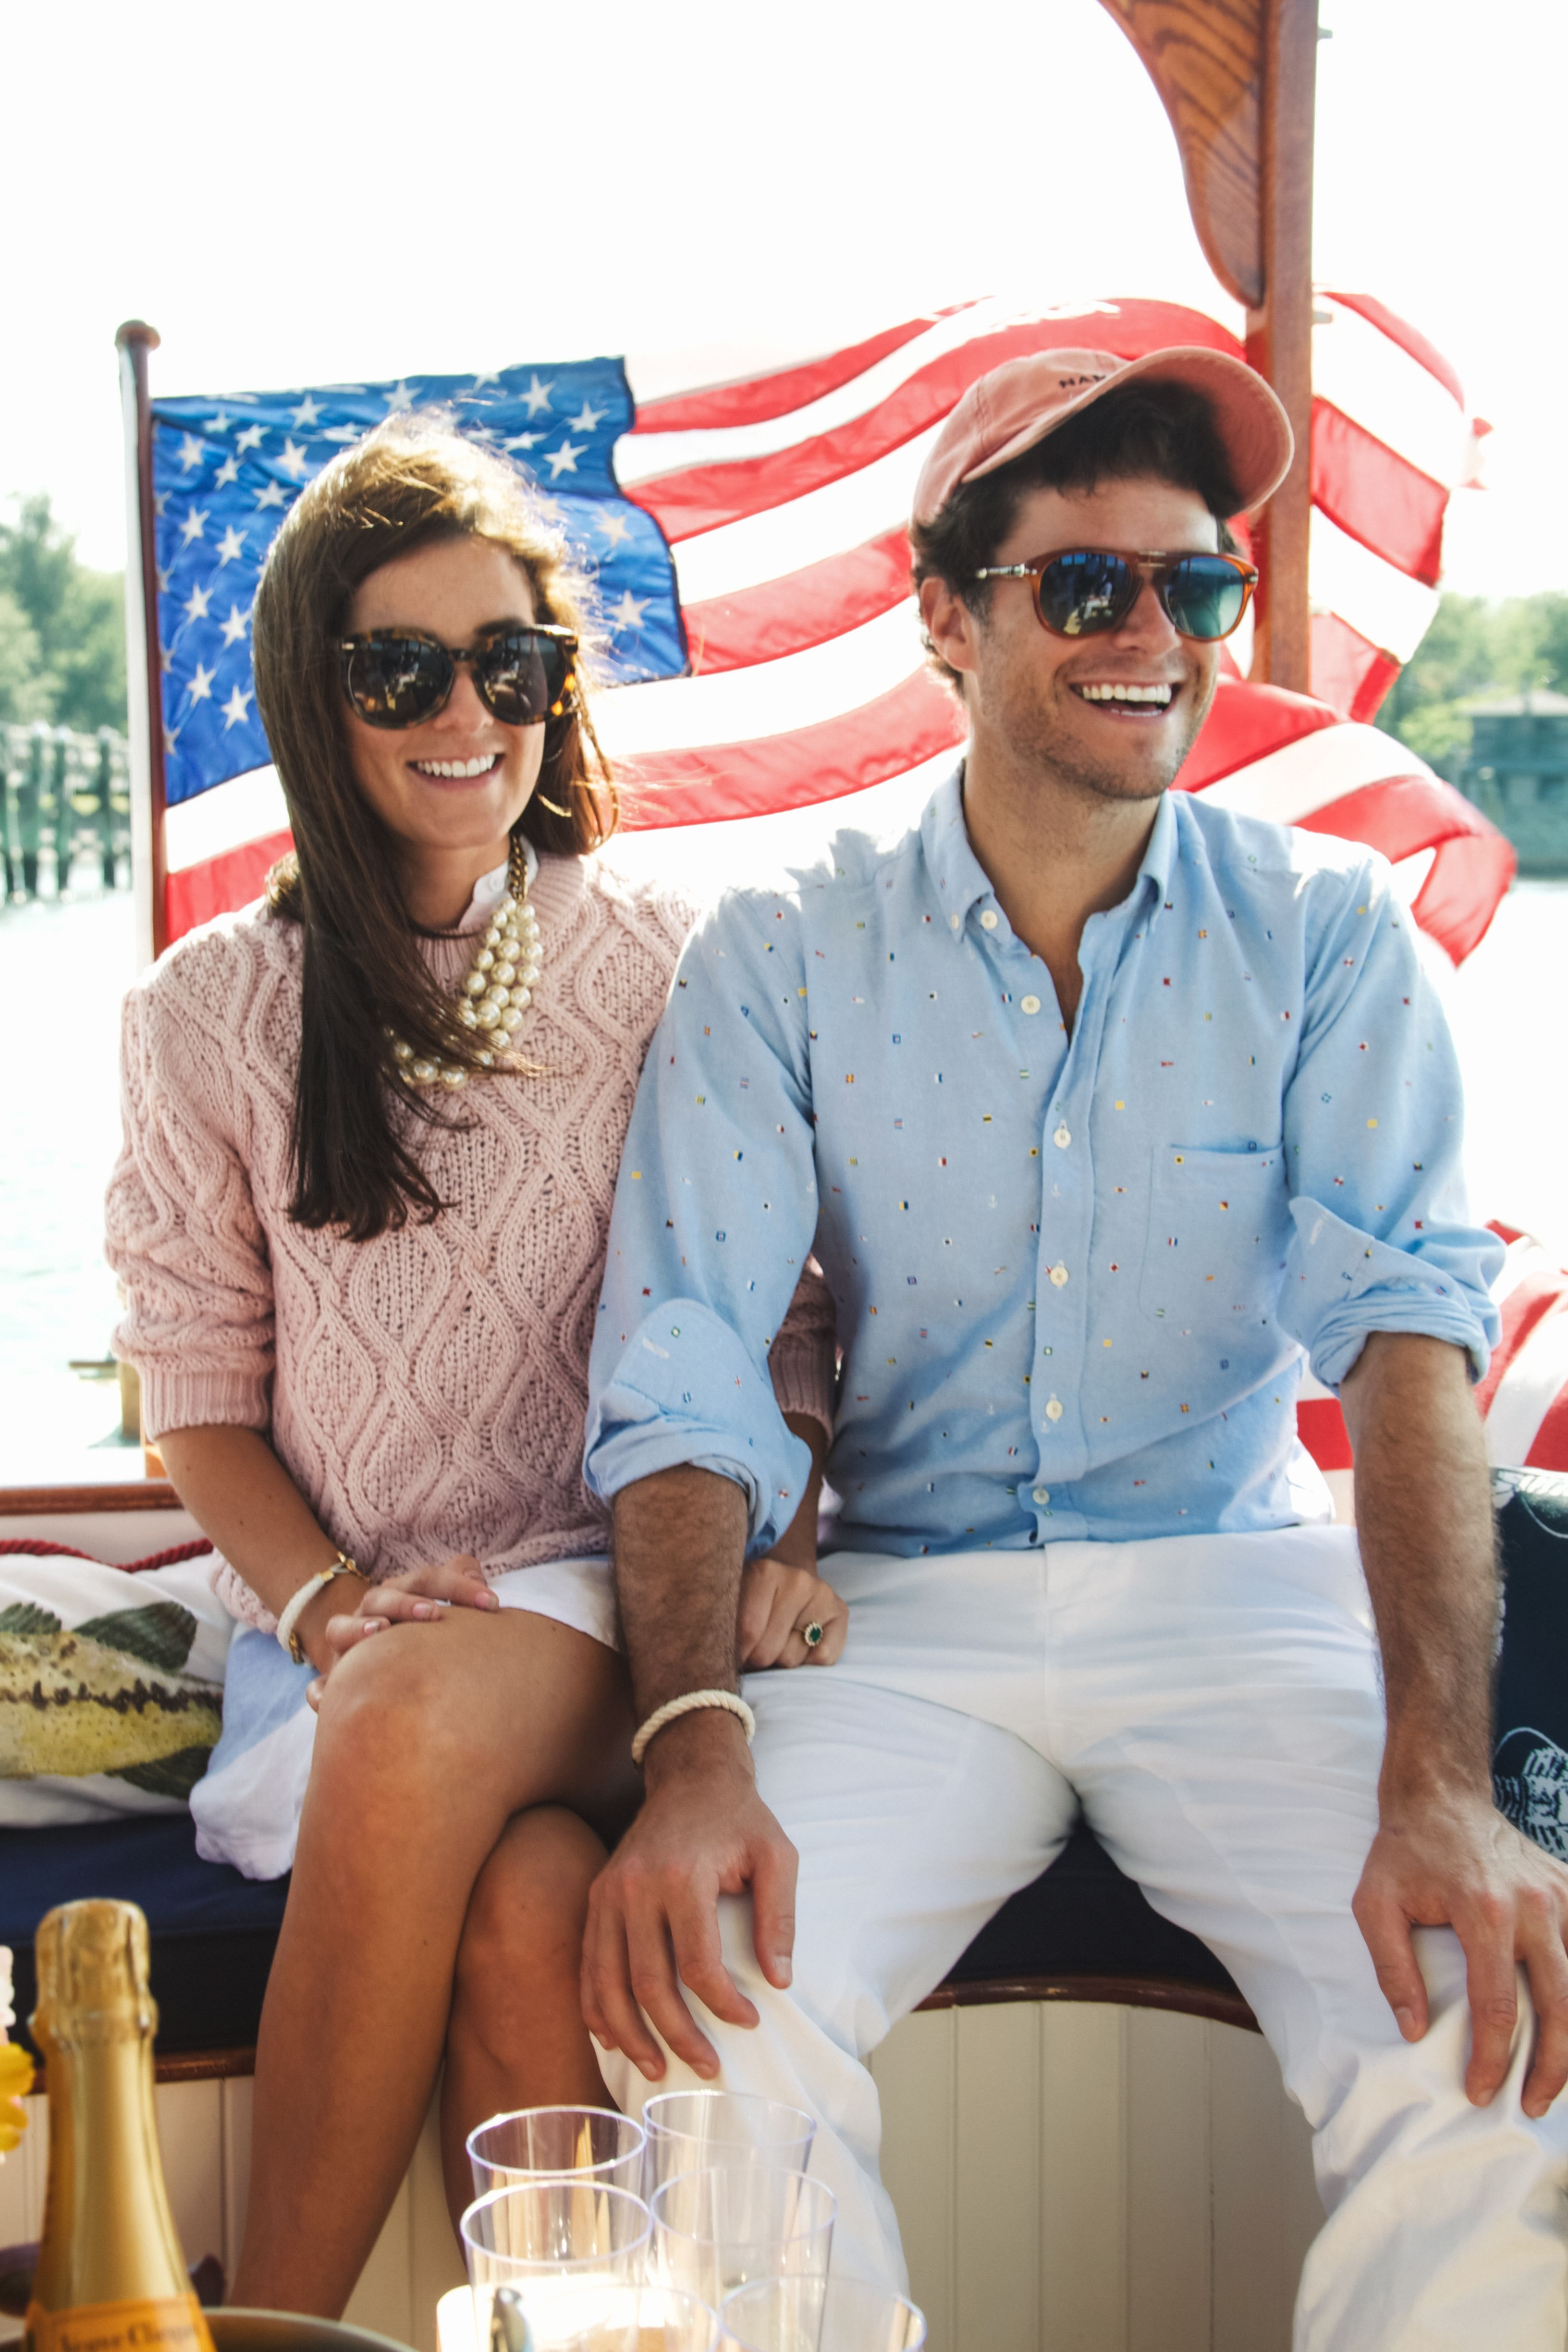 Kiel James Patrick and Sarah Vickers on a yacht.